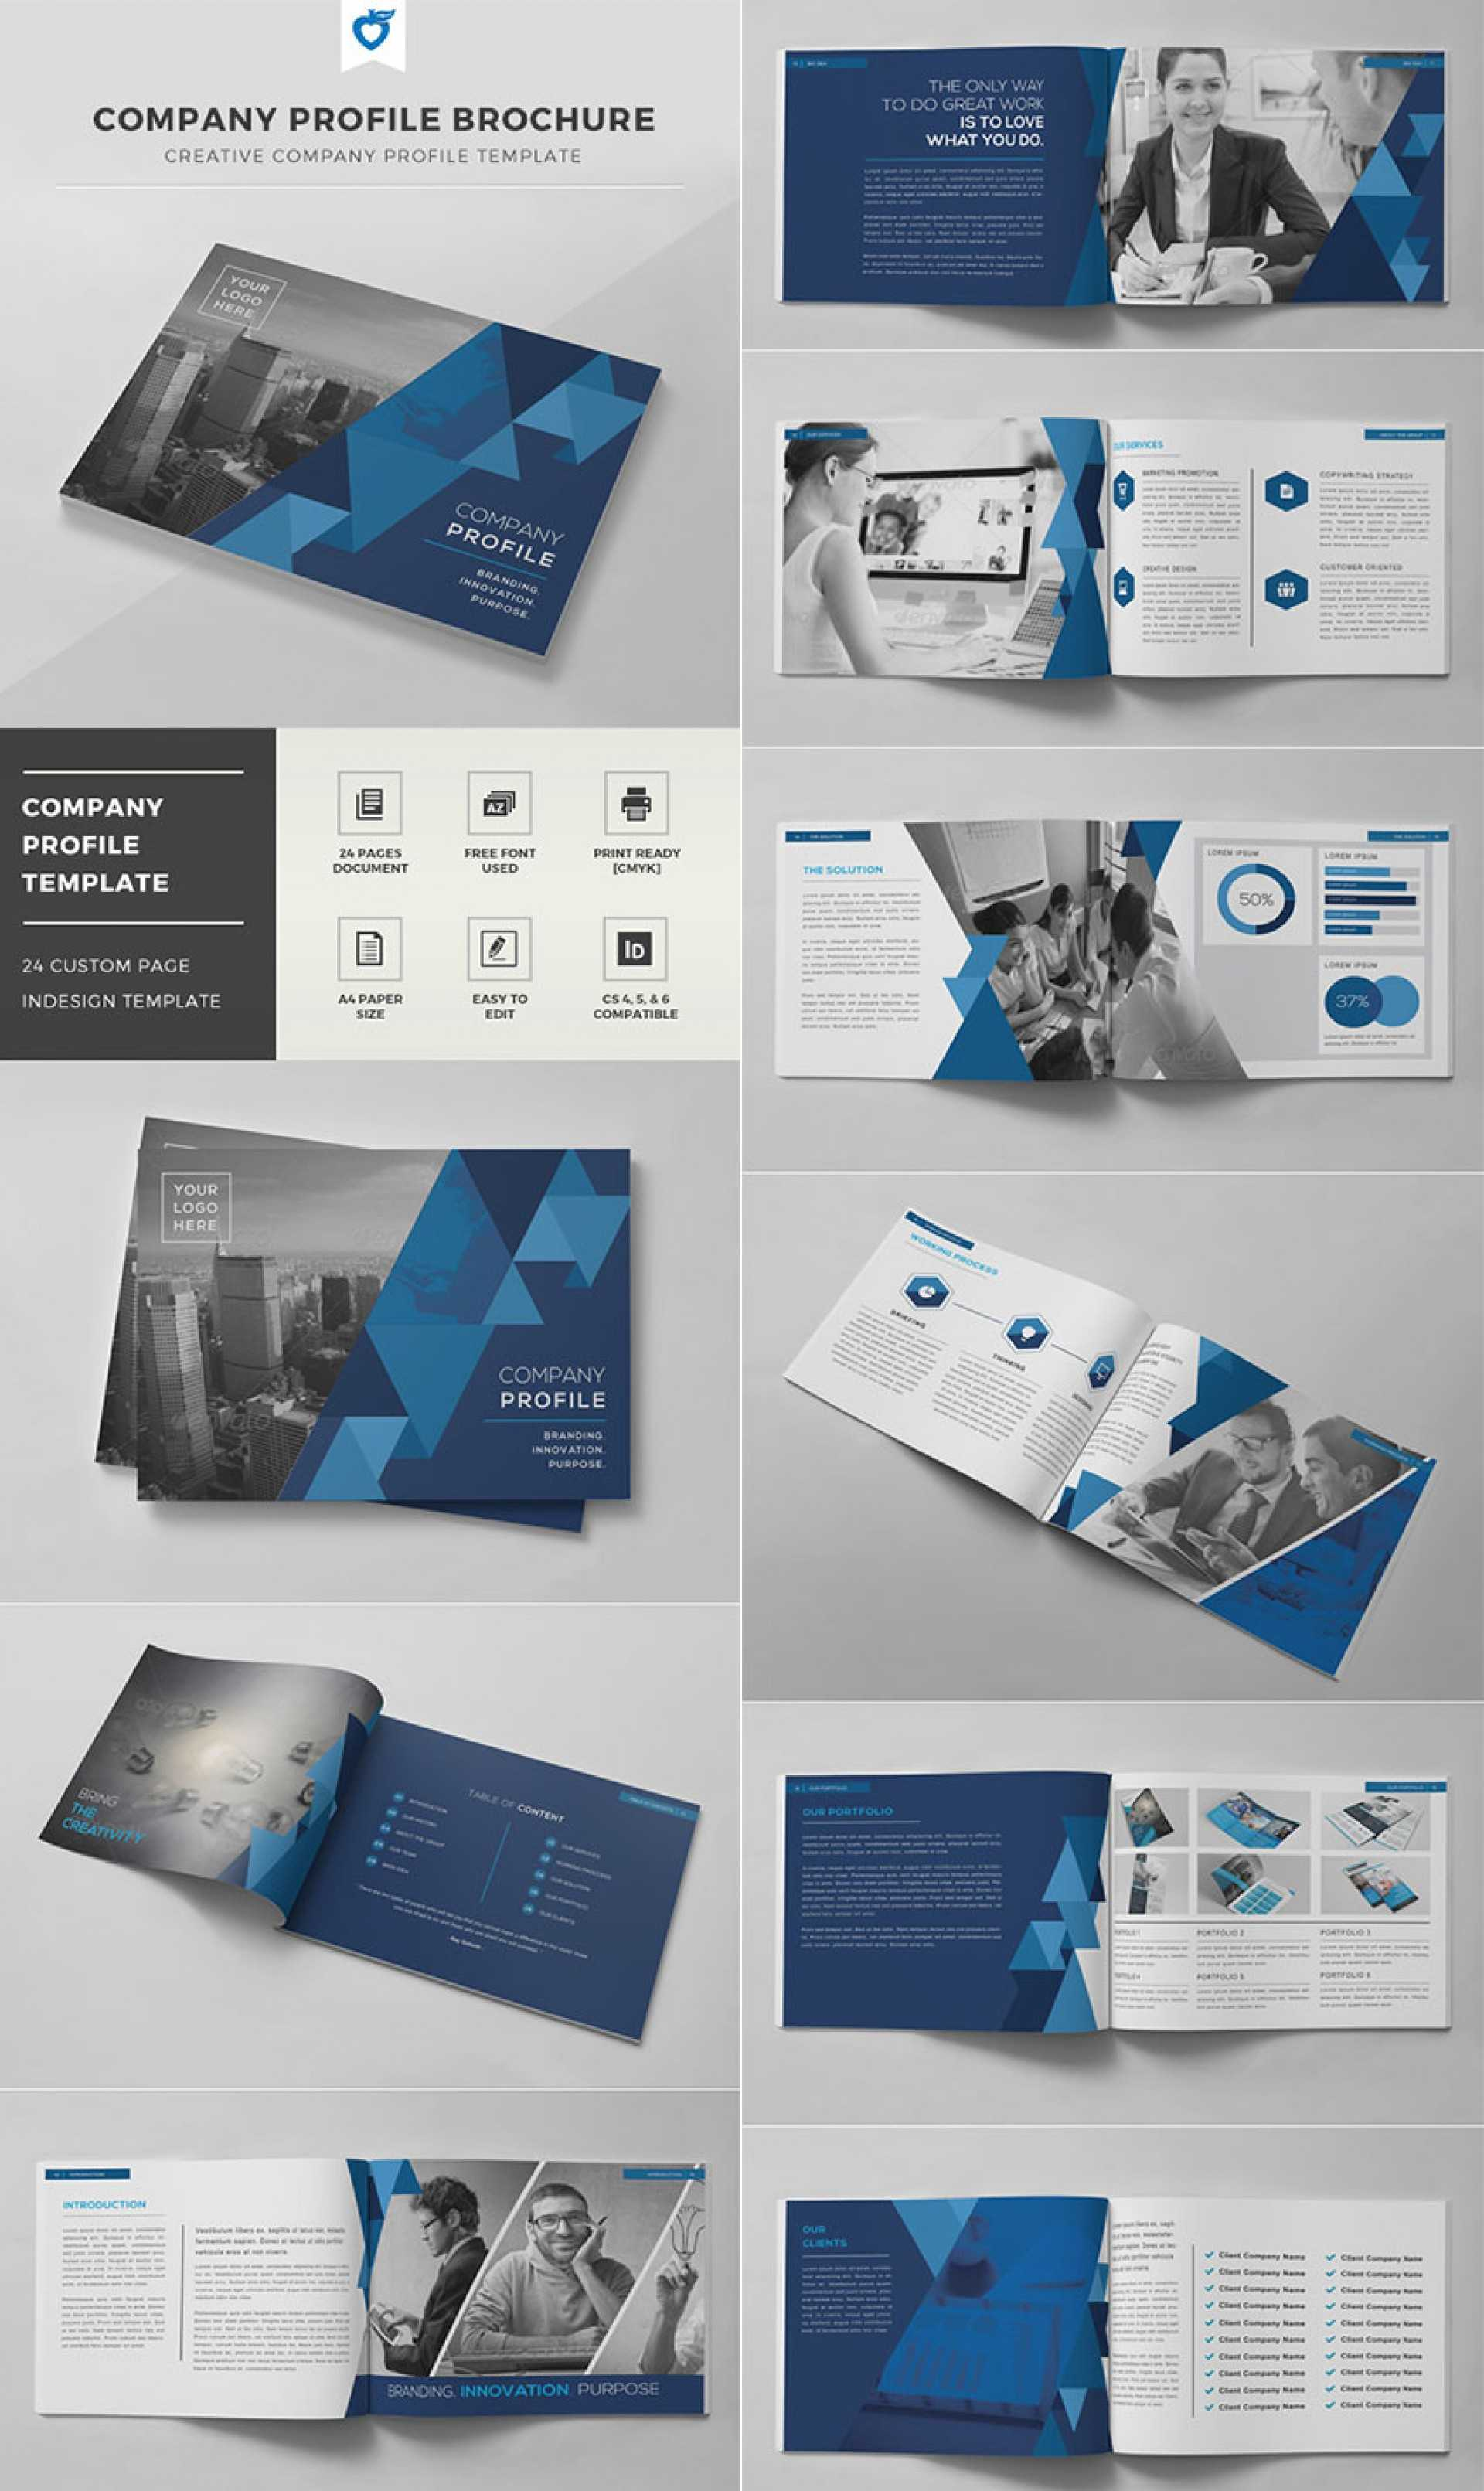 Indesign Template Free Brochure 004 Ideas Templates Company With Regard To Indesign Templates Free Download Brochure